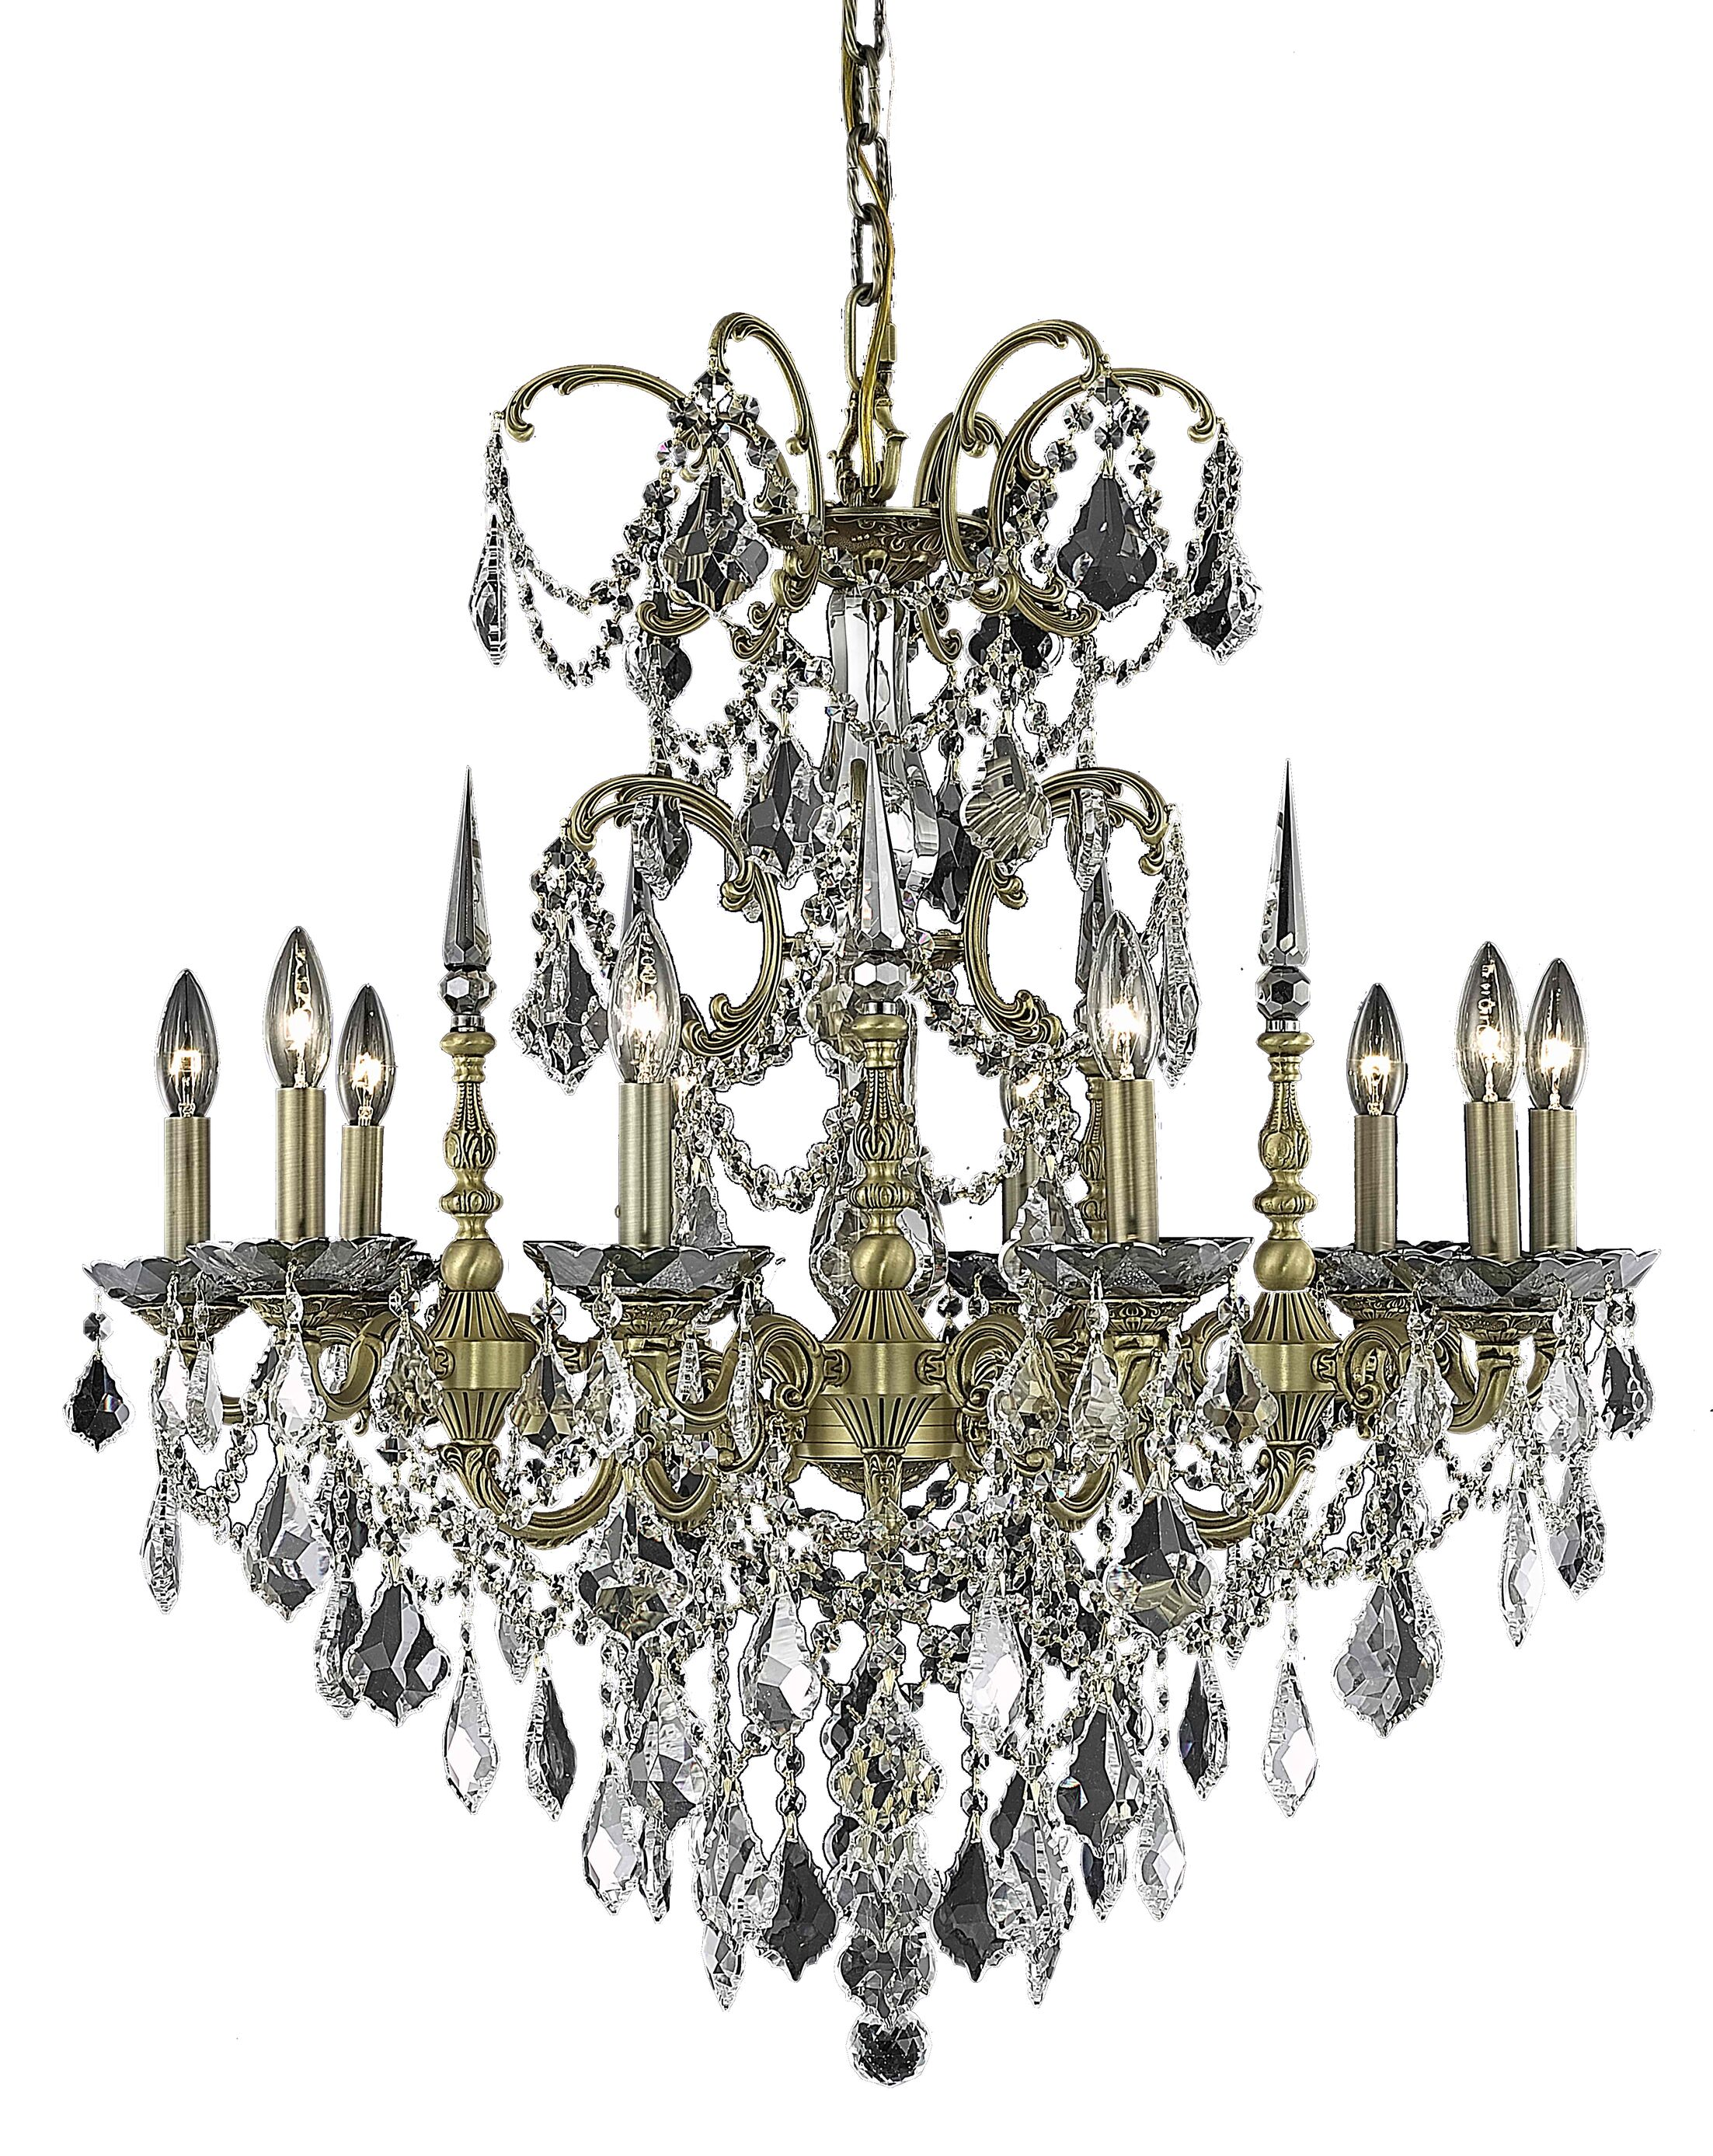 Cherie 10-Light Glass Candle Style Chandelier Finish / Crystal Finish / Crystal Trim: Pewter / Golden Teak (Smoky) / Royal Cut